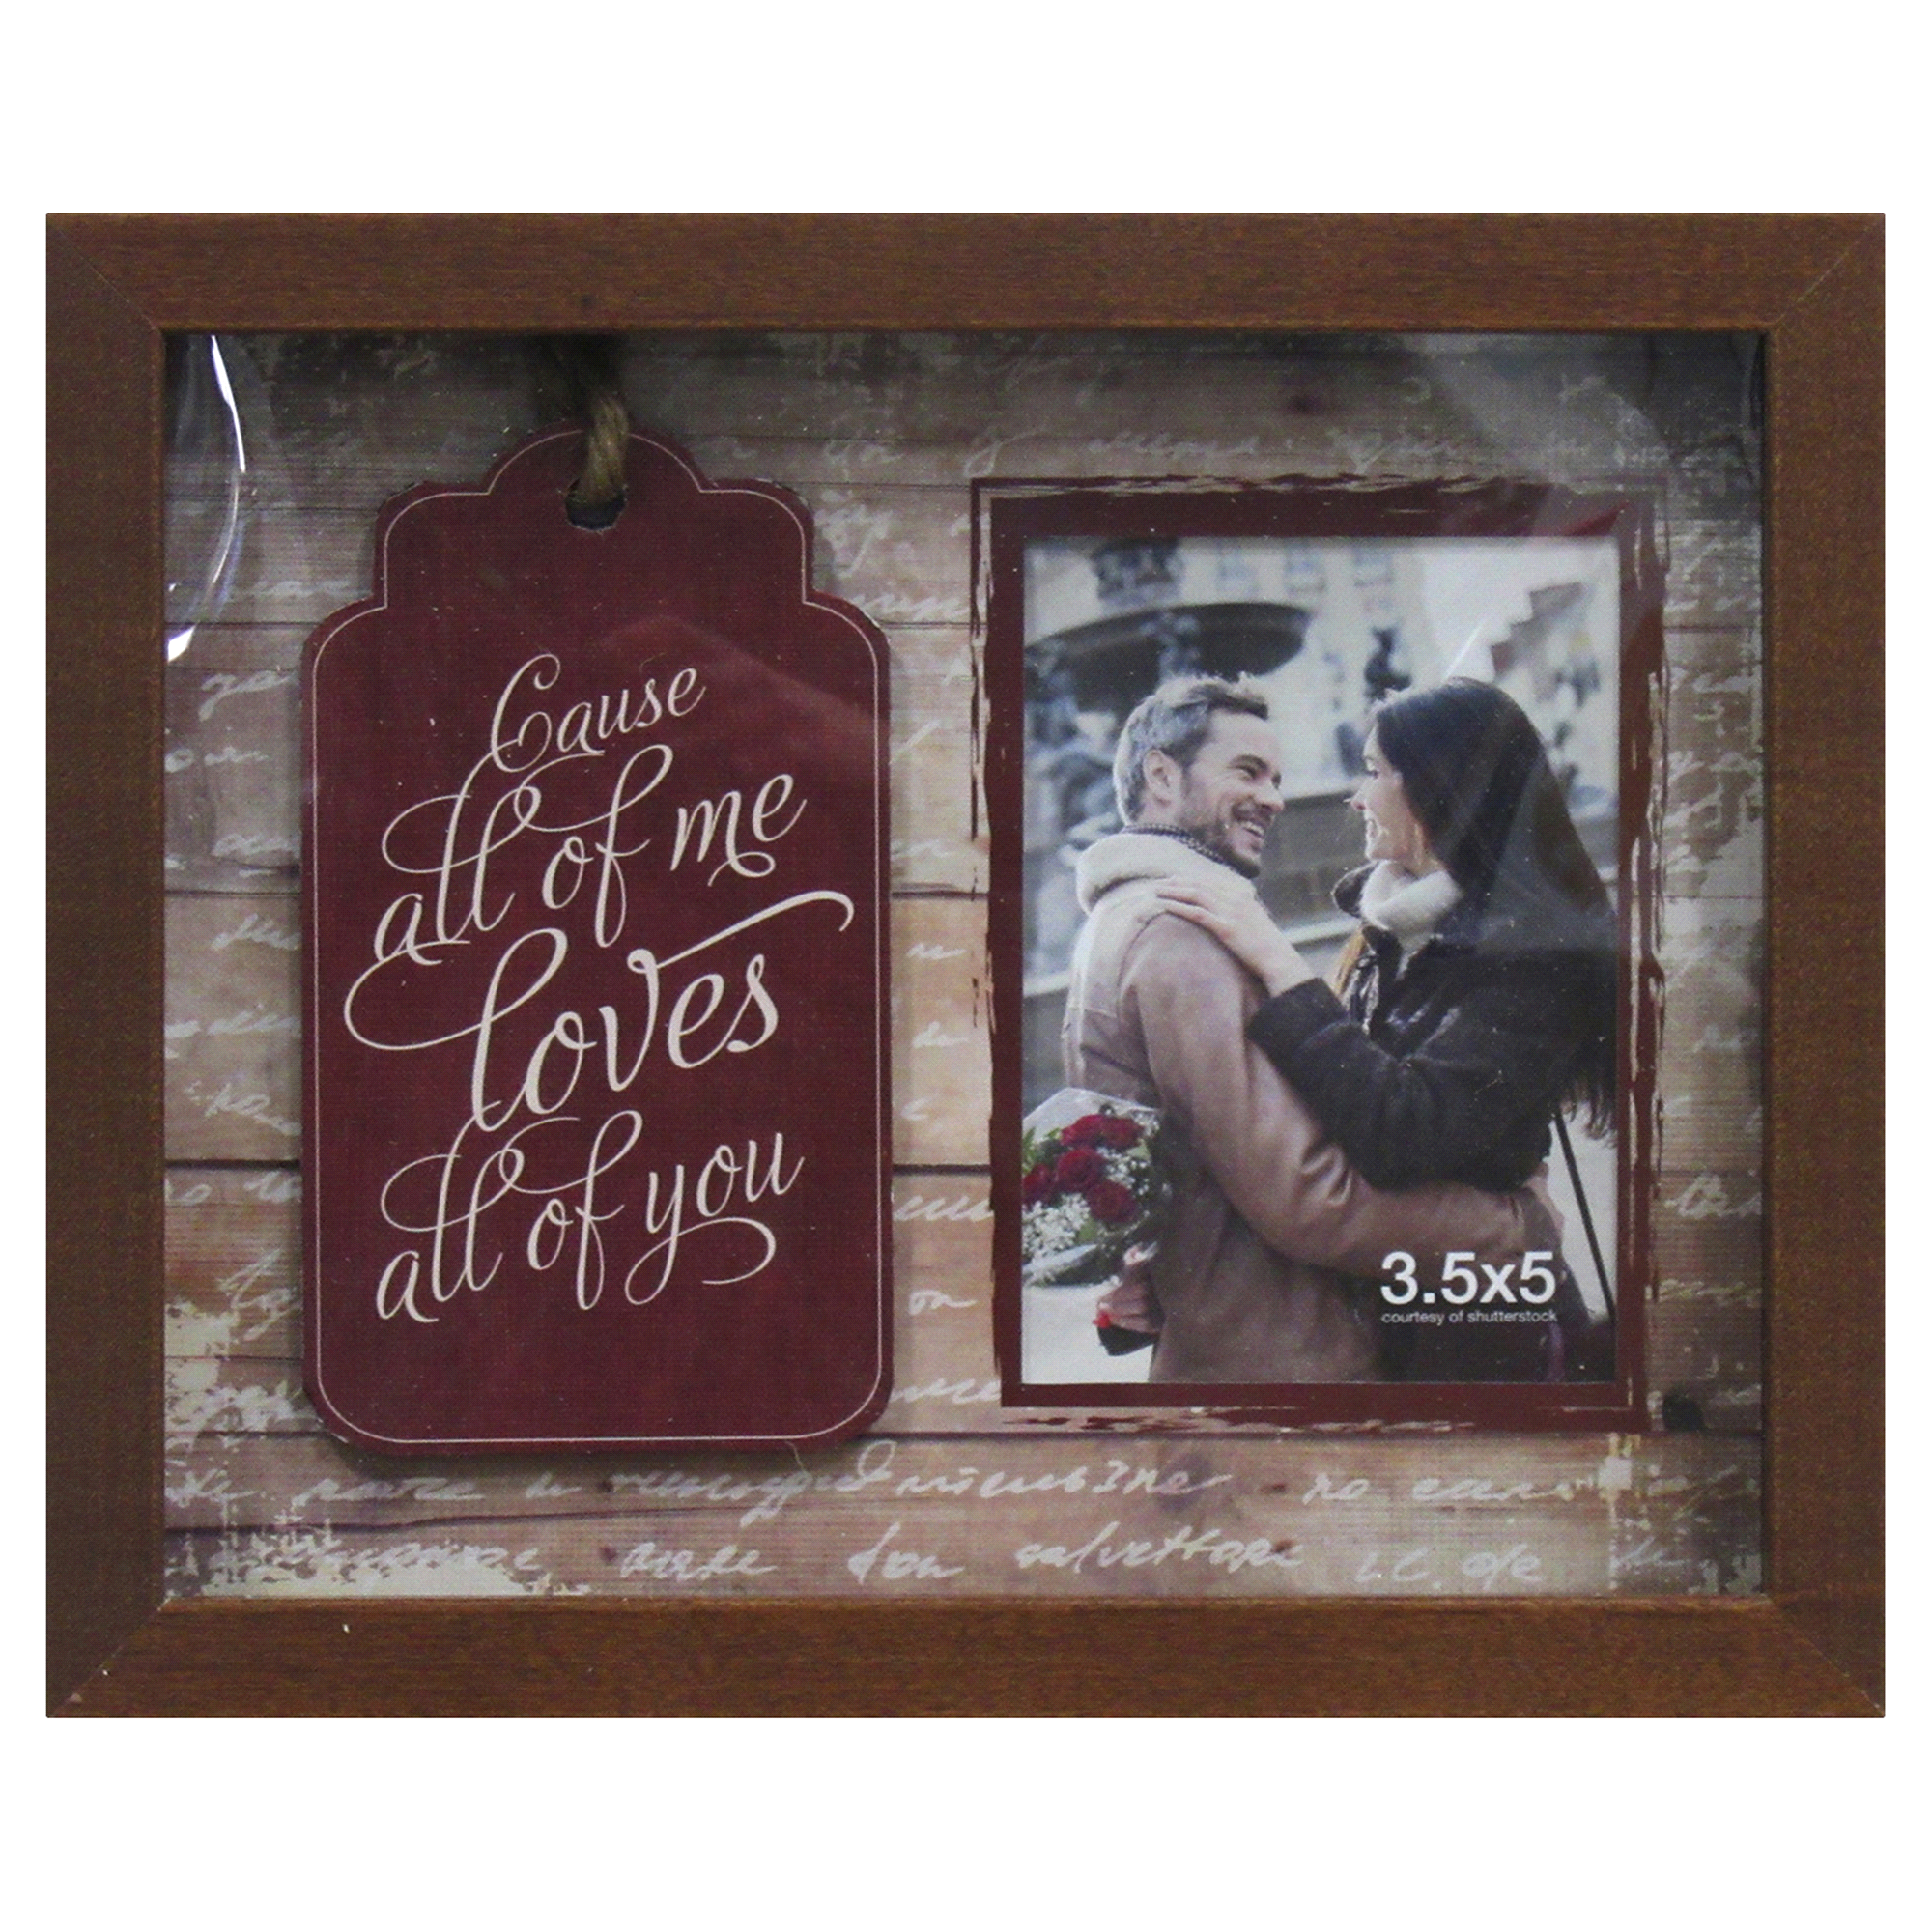 Creative Products All Of Me Shadow Box Frame 11 x 9 | Meijer.com